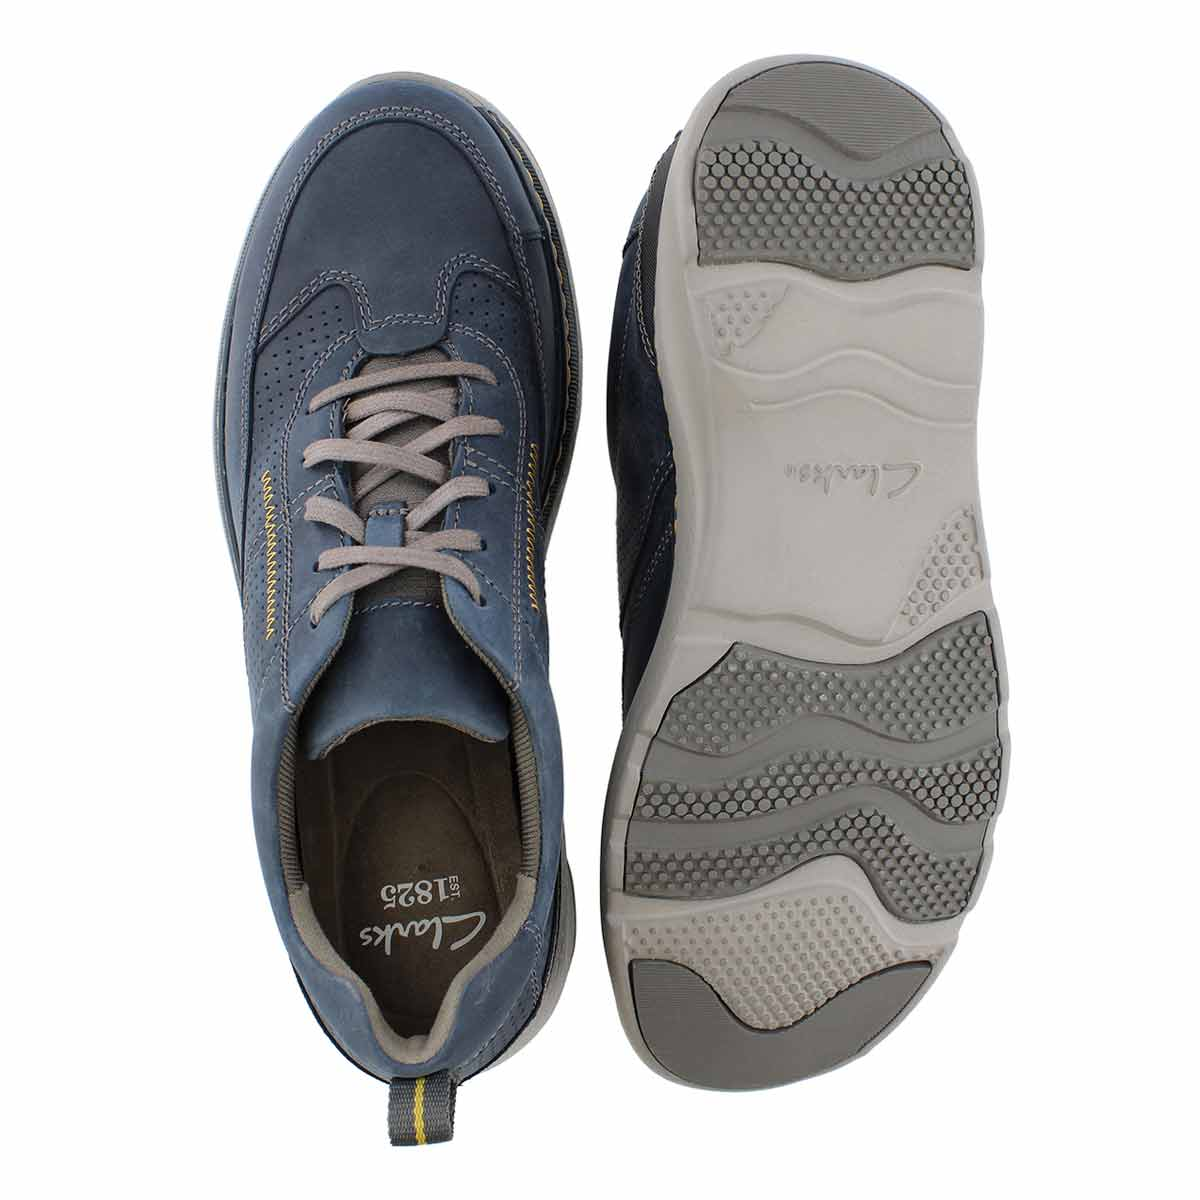 Mns Charton Mix navy casual lace up